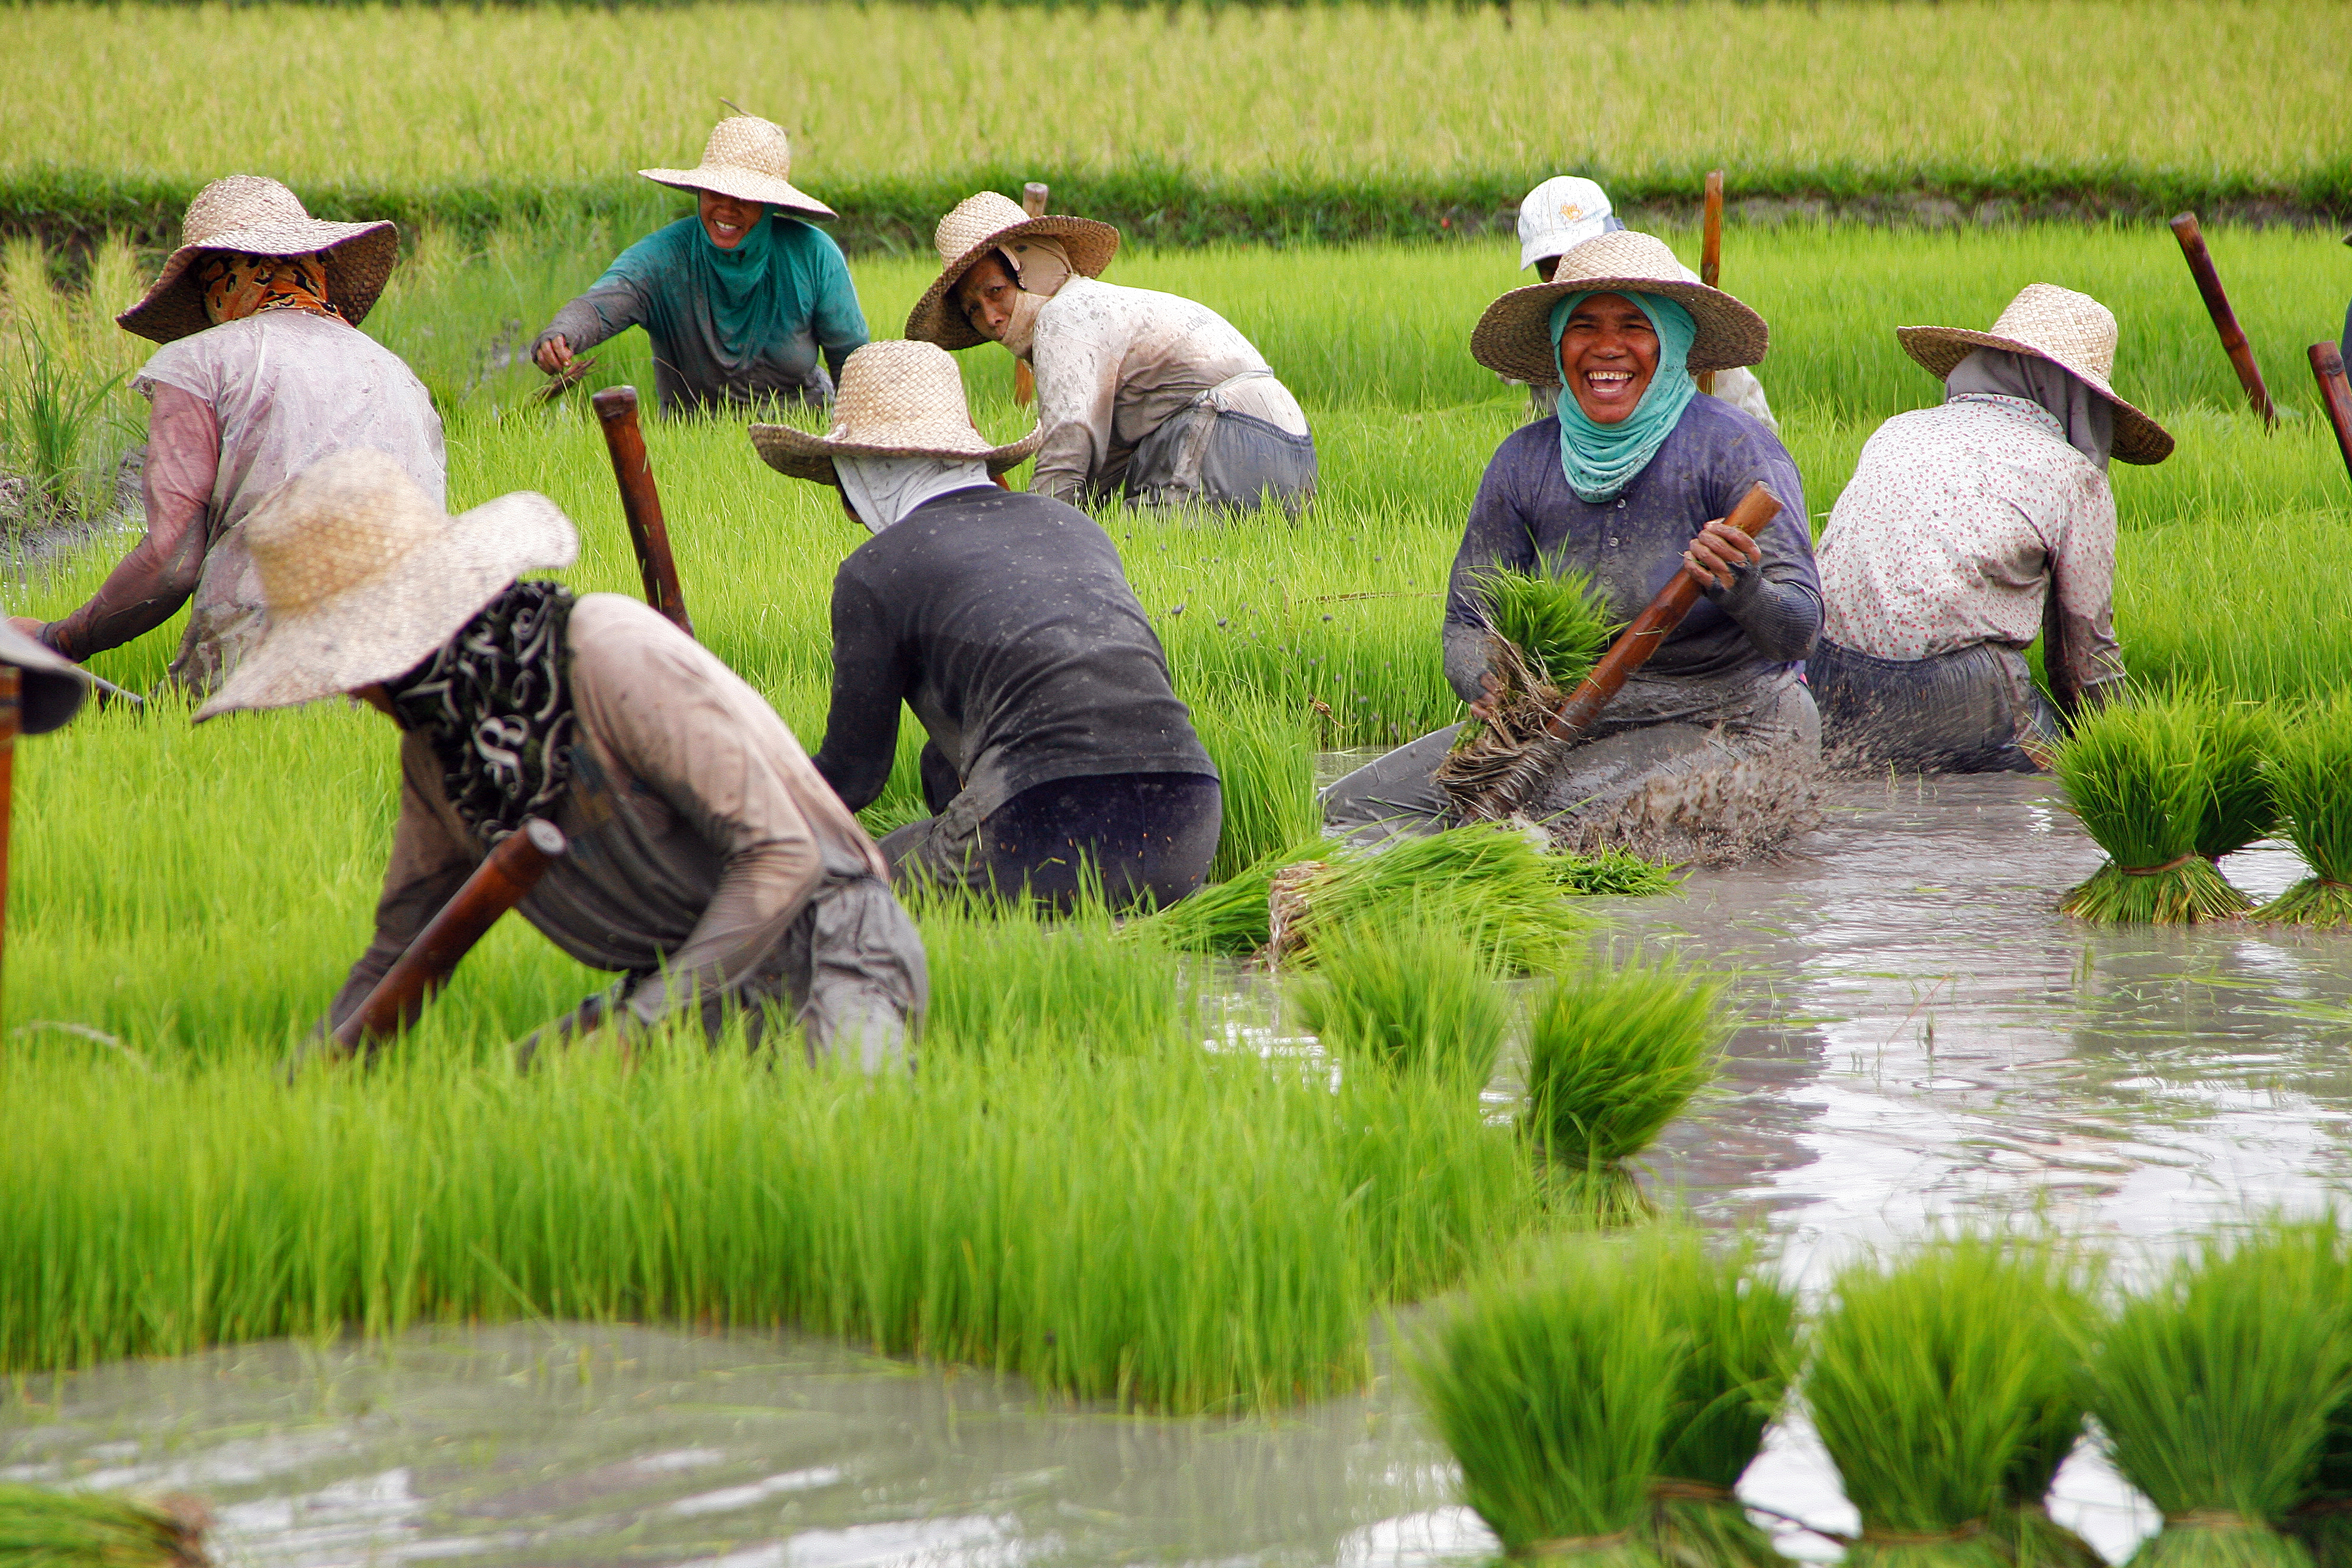 Middle East investors to finance agri-business in PH